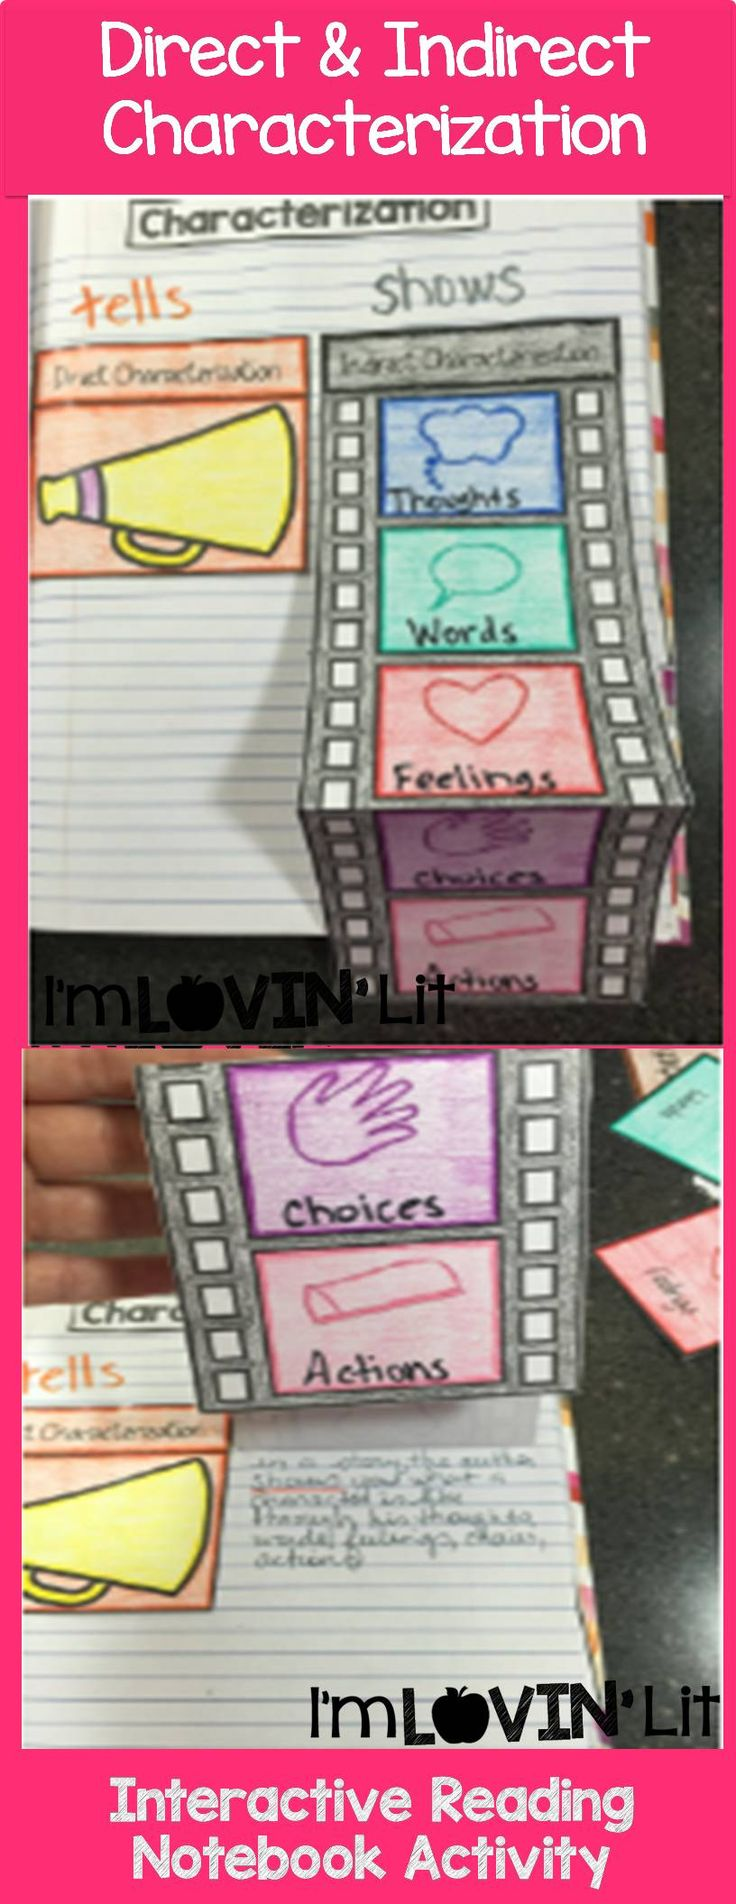 Direct and Indirect Characterization Foldable, Direct and Indirect Characterization Interactive Notebook Activity by Lovin' Lit from the ALL NEW Interactive Reading Literature Notebooks, Part 2